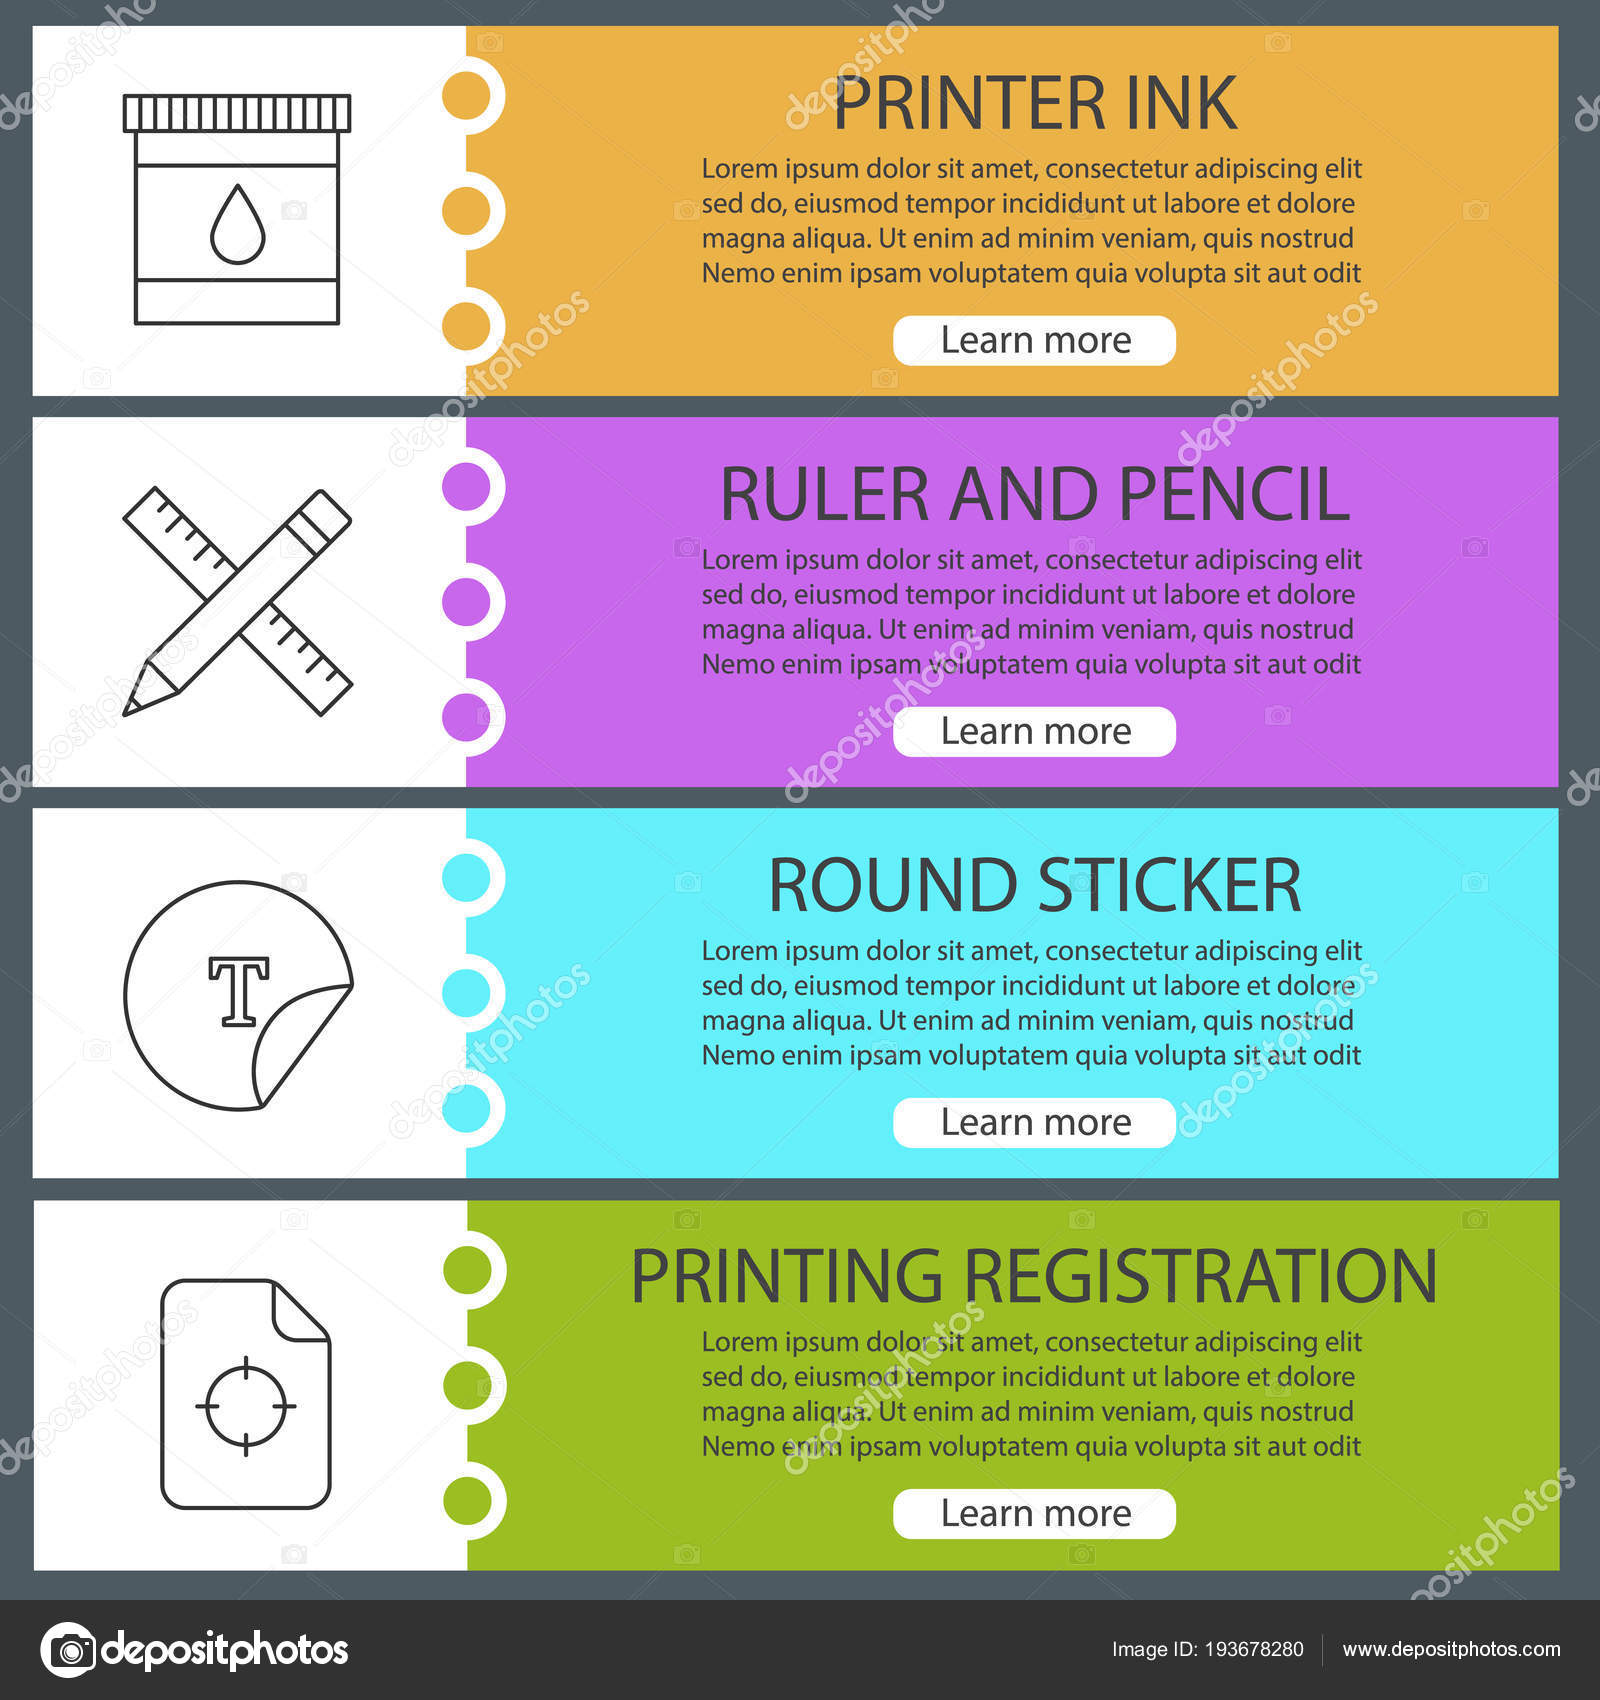 Printing Web Banner Templates Set Printer Ink Ruler Pencil Sticker ...